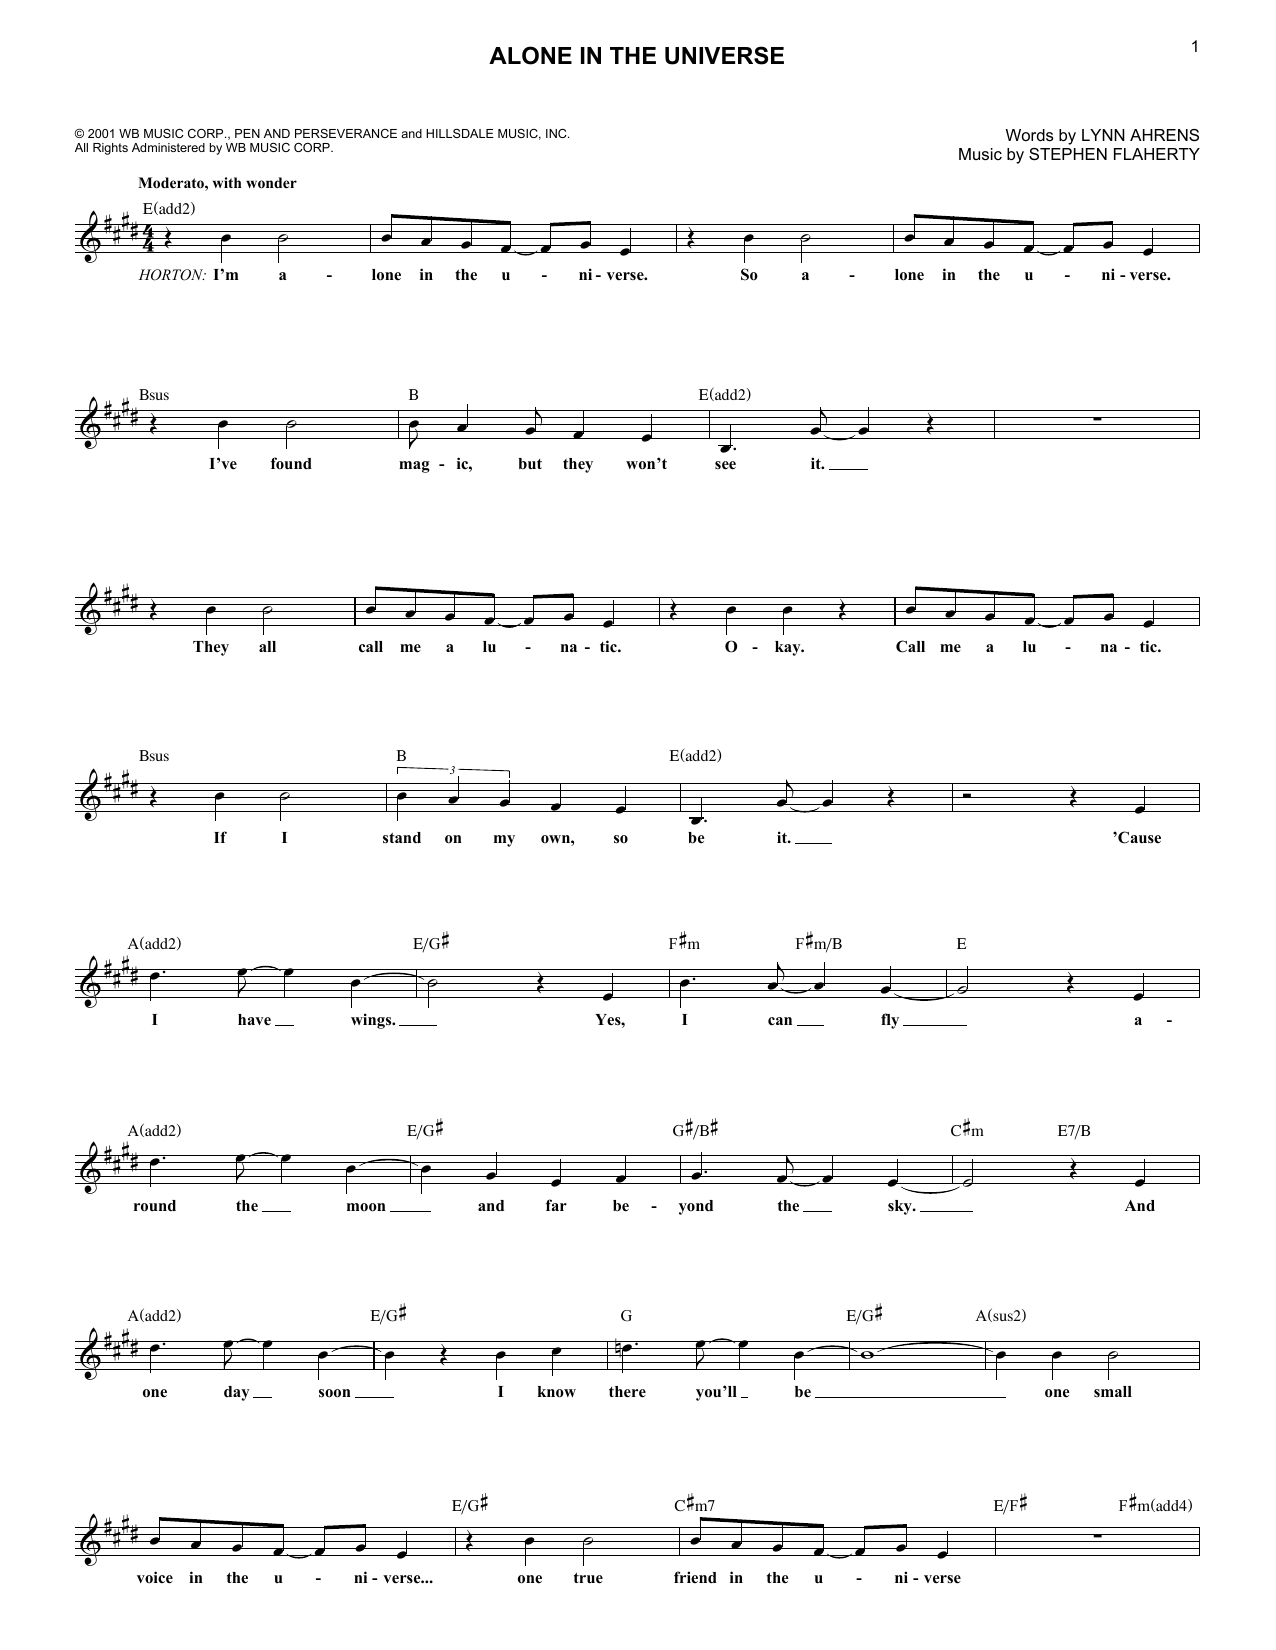 Stephen Flaherty Alone In The Universe sheet music notes and chords. Download Printable PDF.